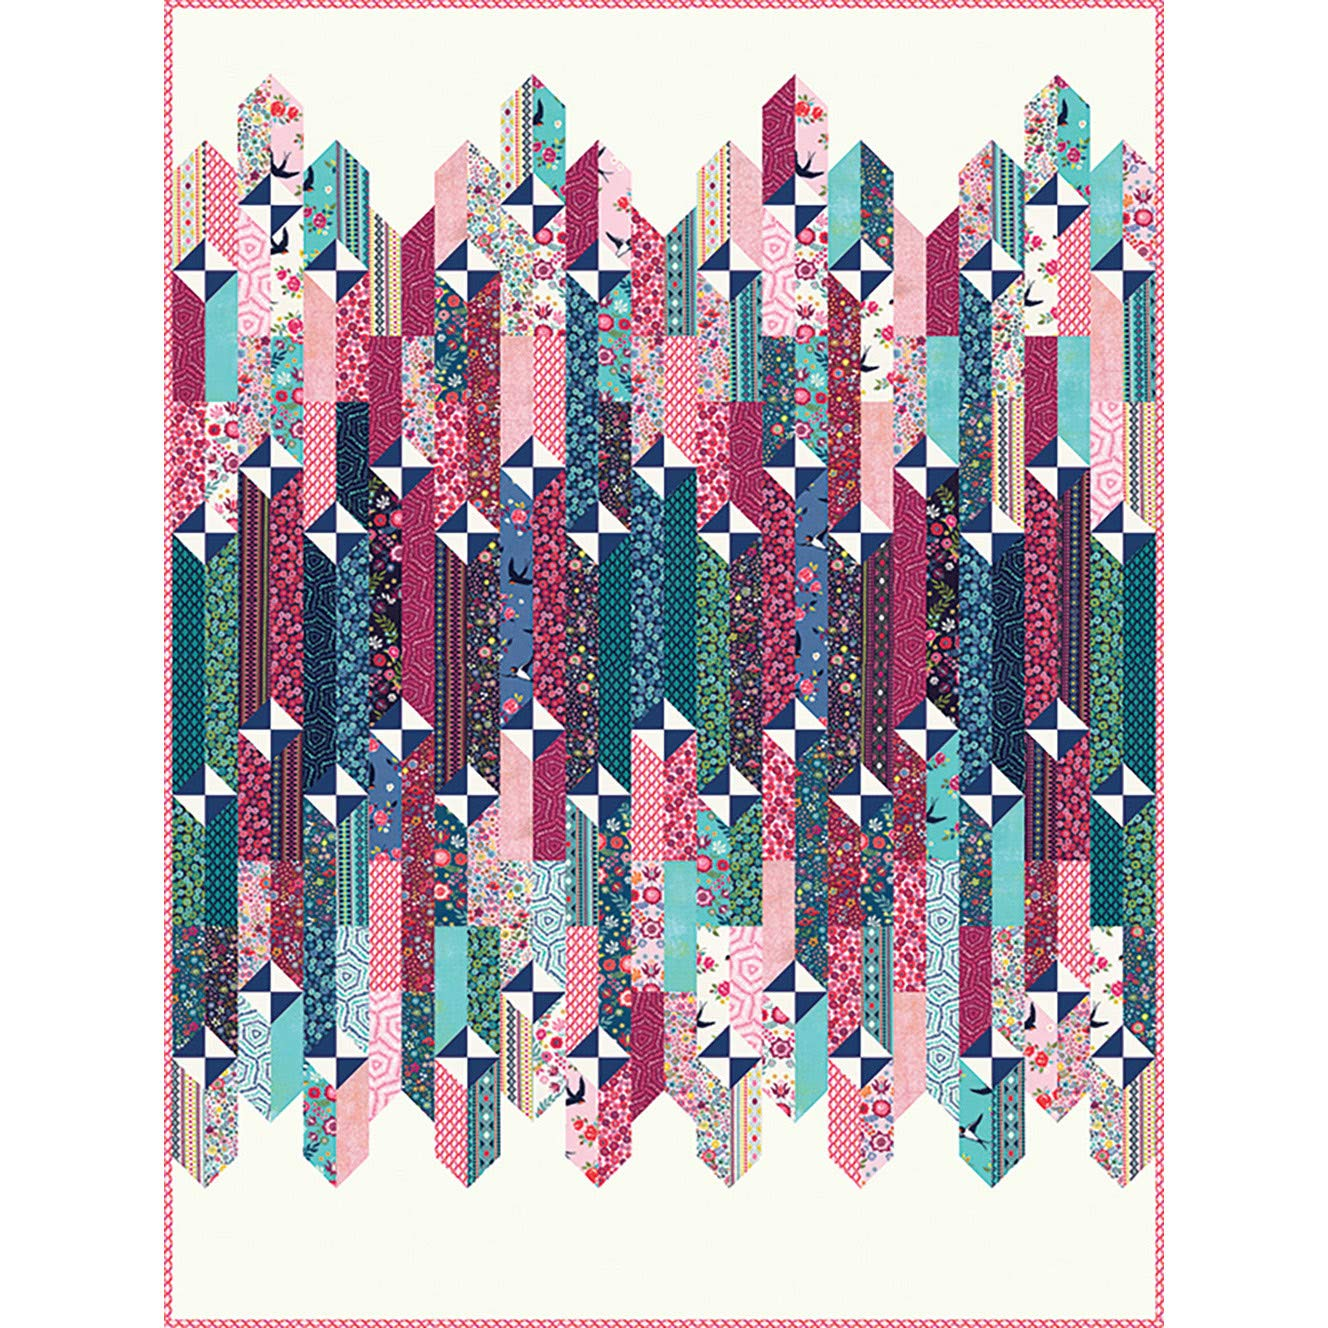 Take Flight Quilt Pattern by Crystal Manning